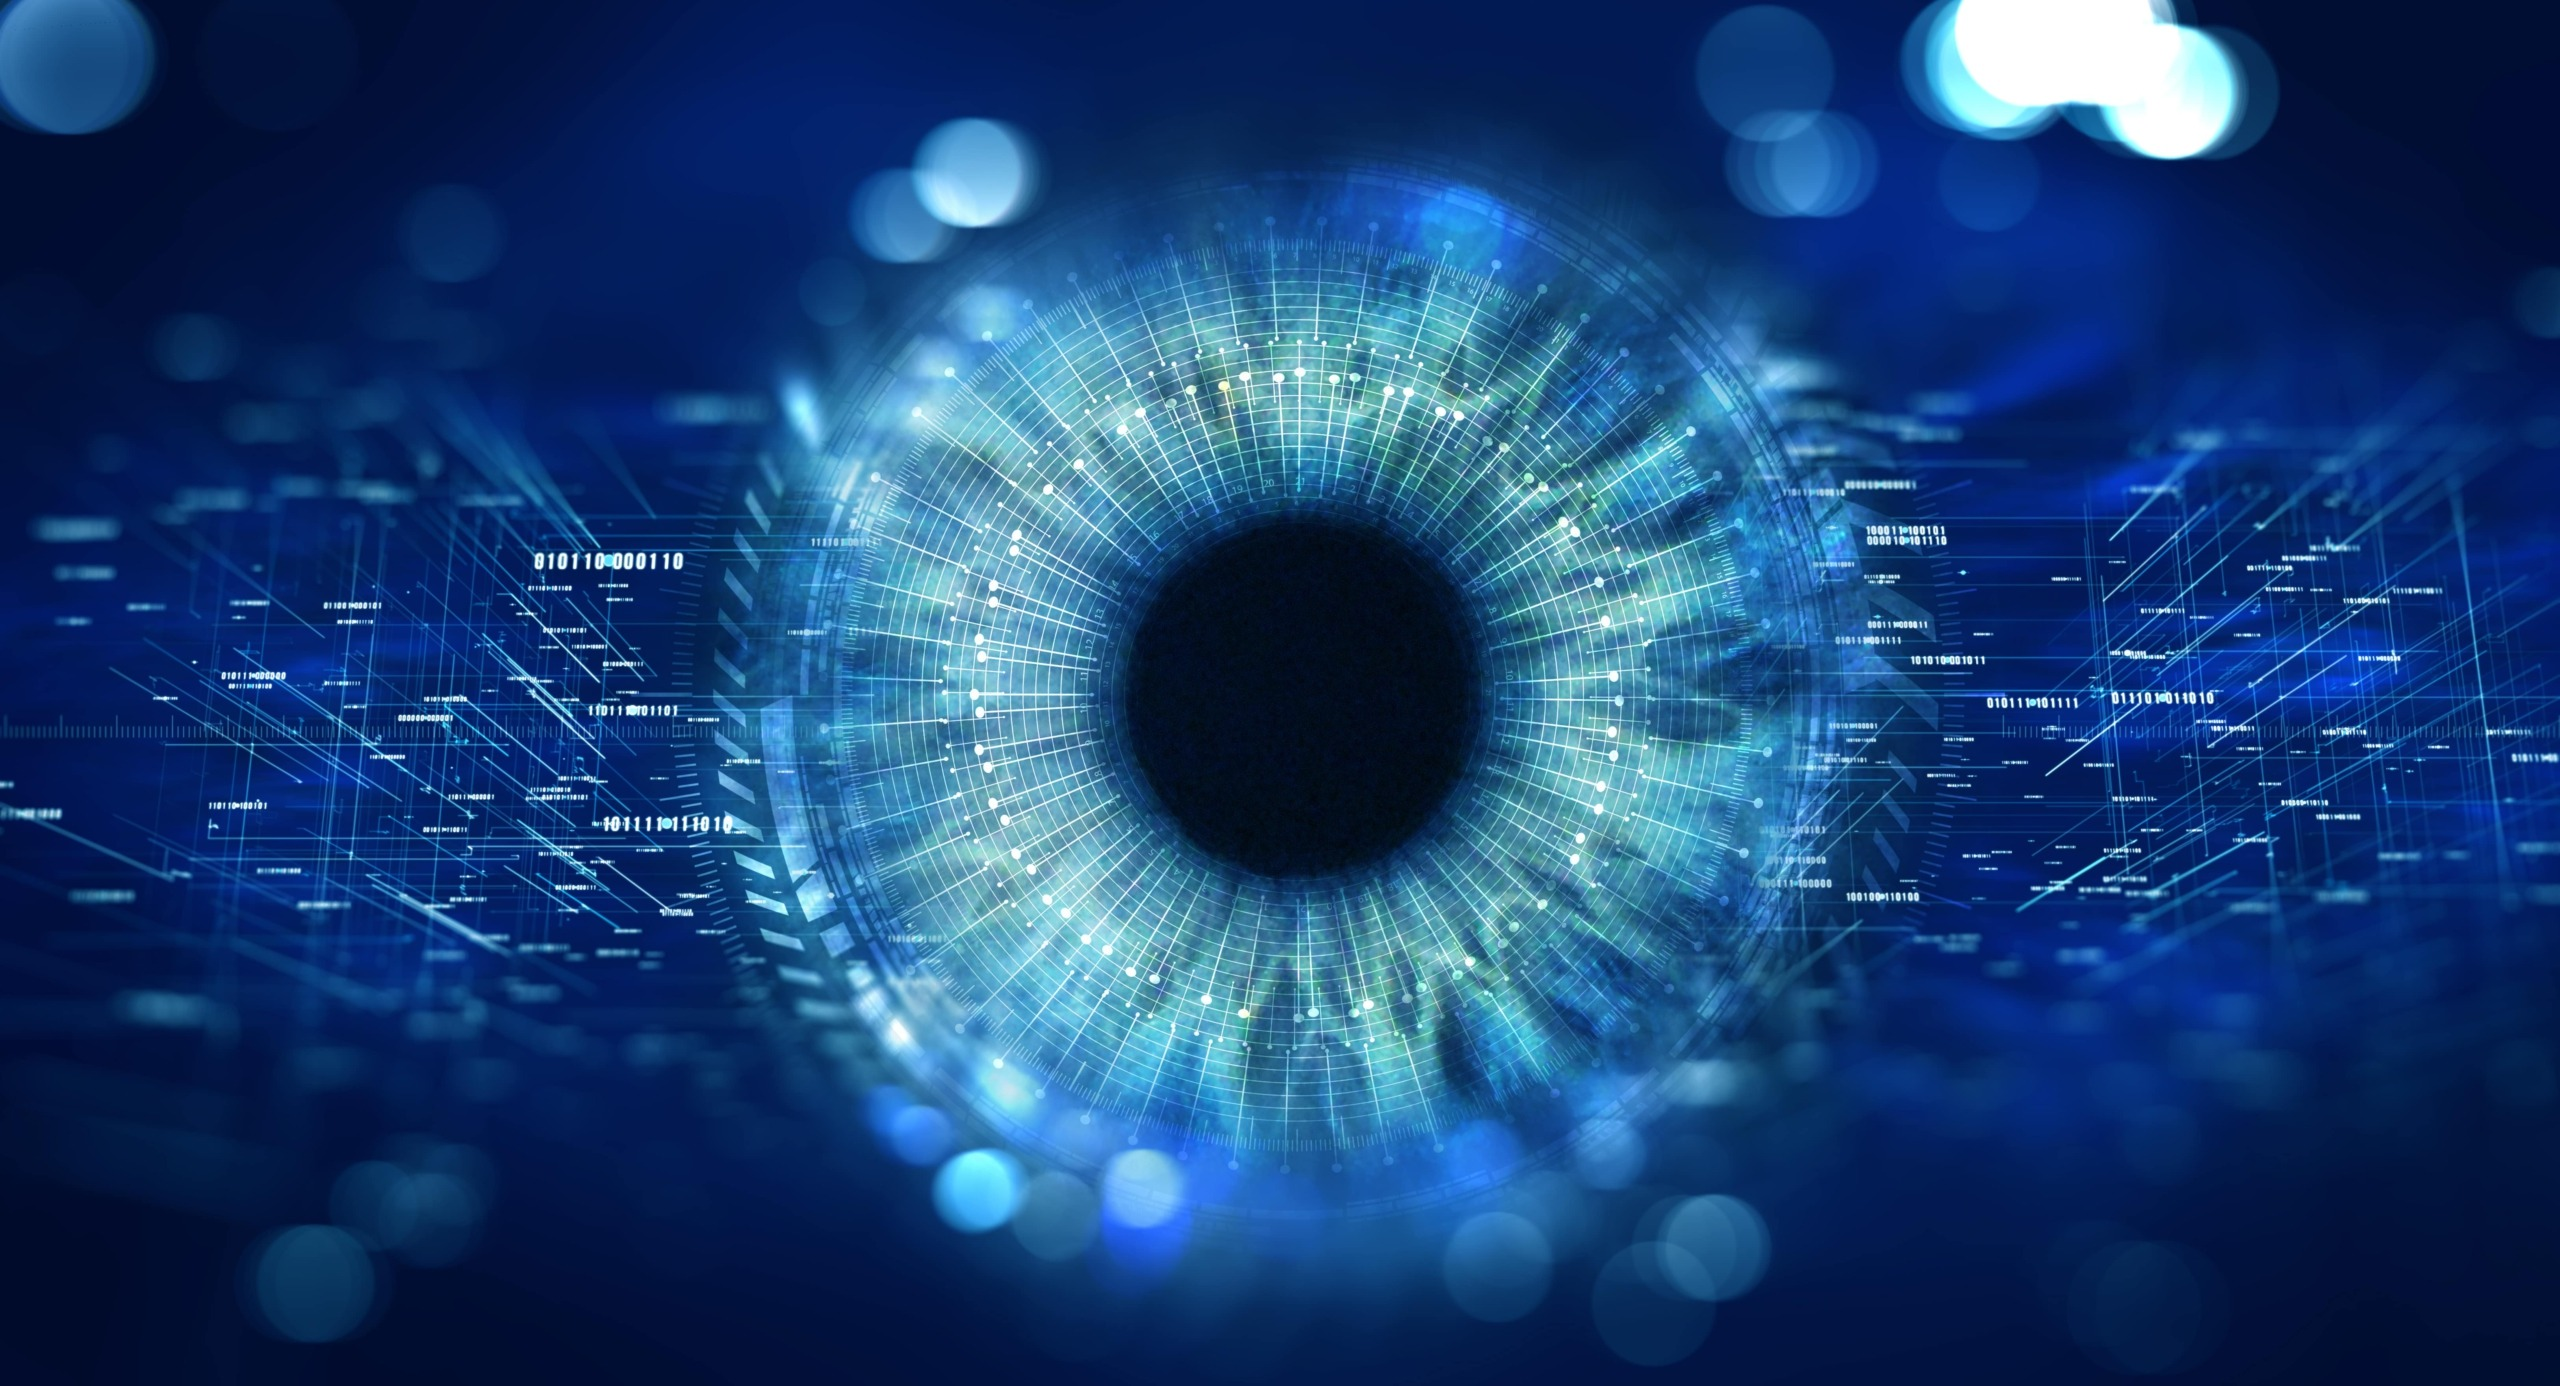 eye with technology, AI and OCR